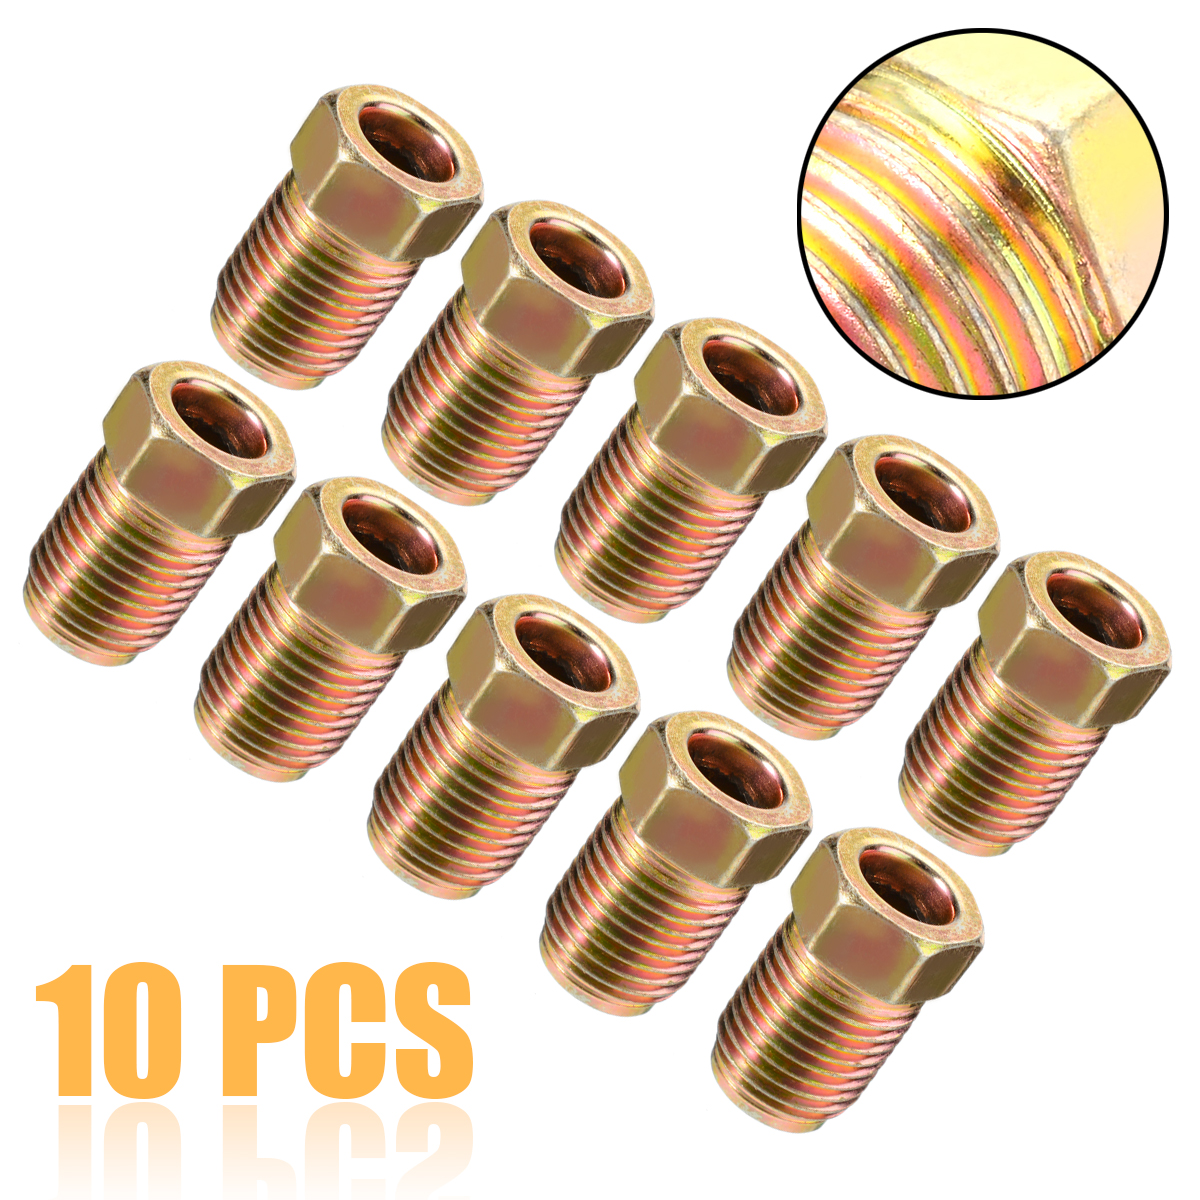 20 x Steel Female Brake Pipe Tube Tubing Nut For 3//16 Pipe 10mm x 1mm Thread